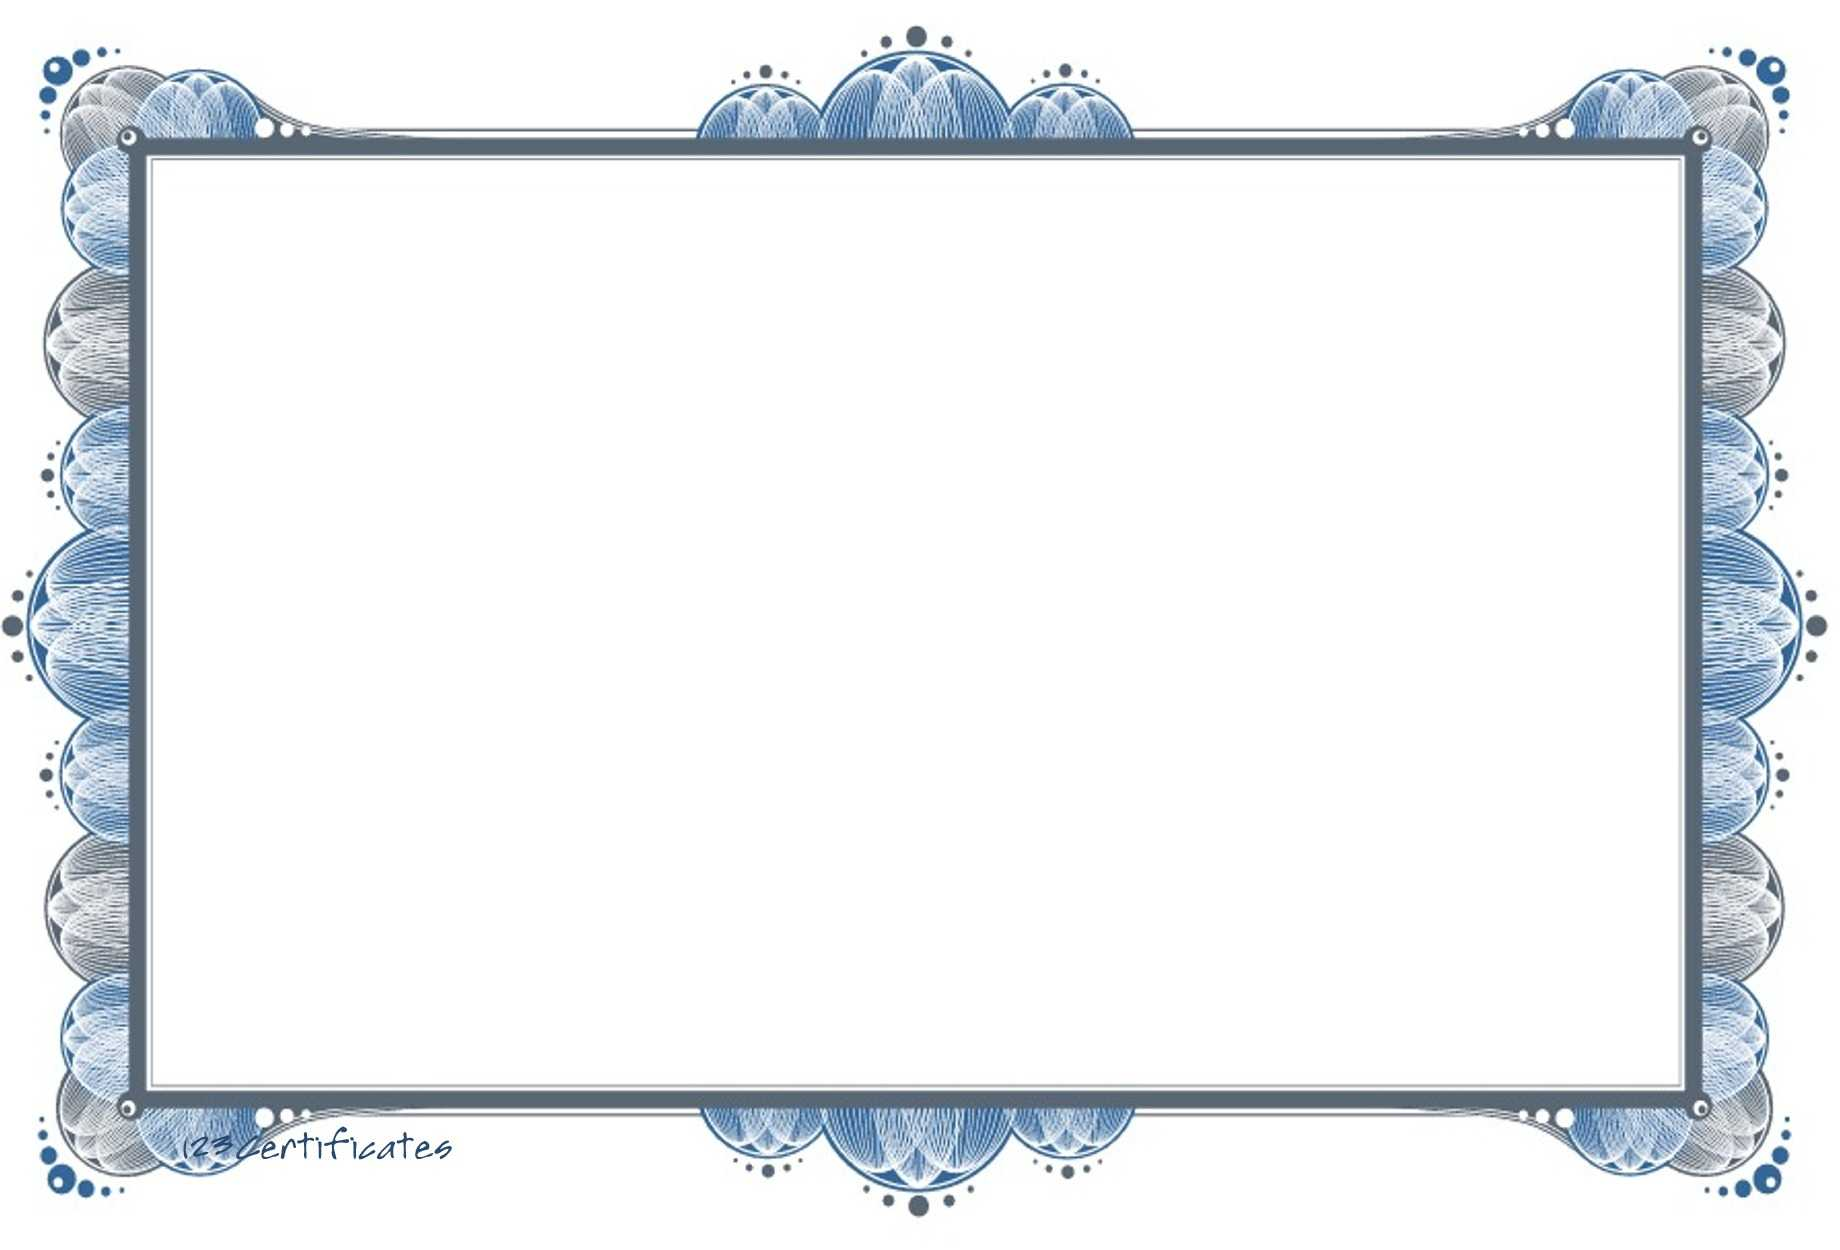 Free Certificate Borders, Download Free Clip Art, Free Clip With Certificate Border Design Templates